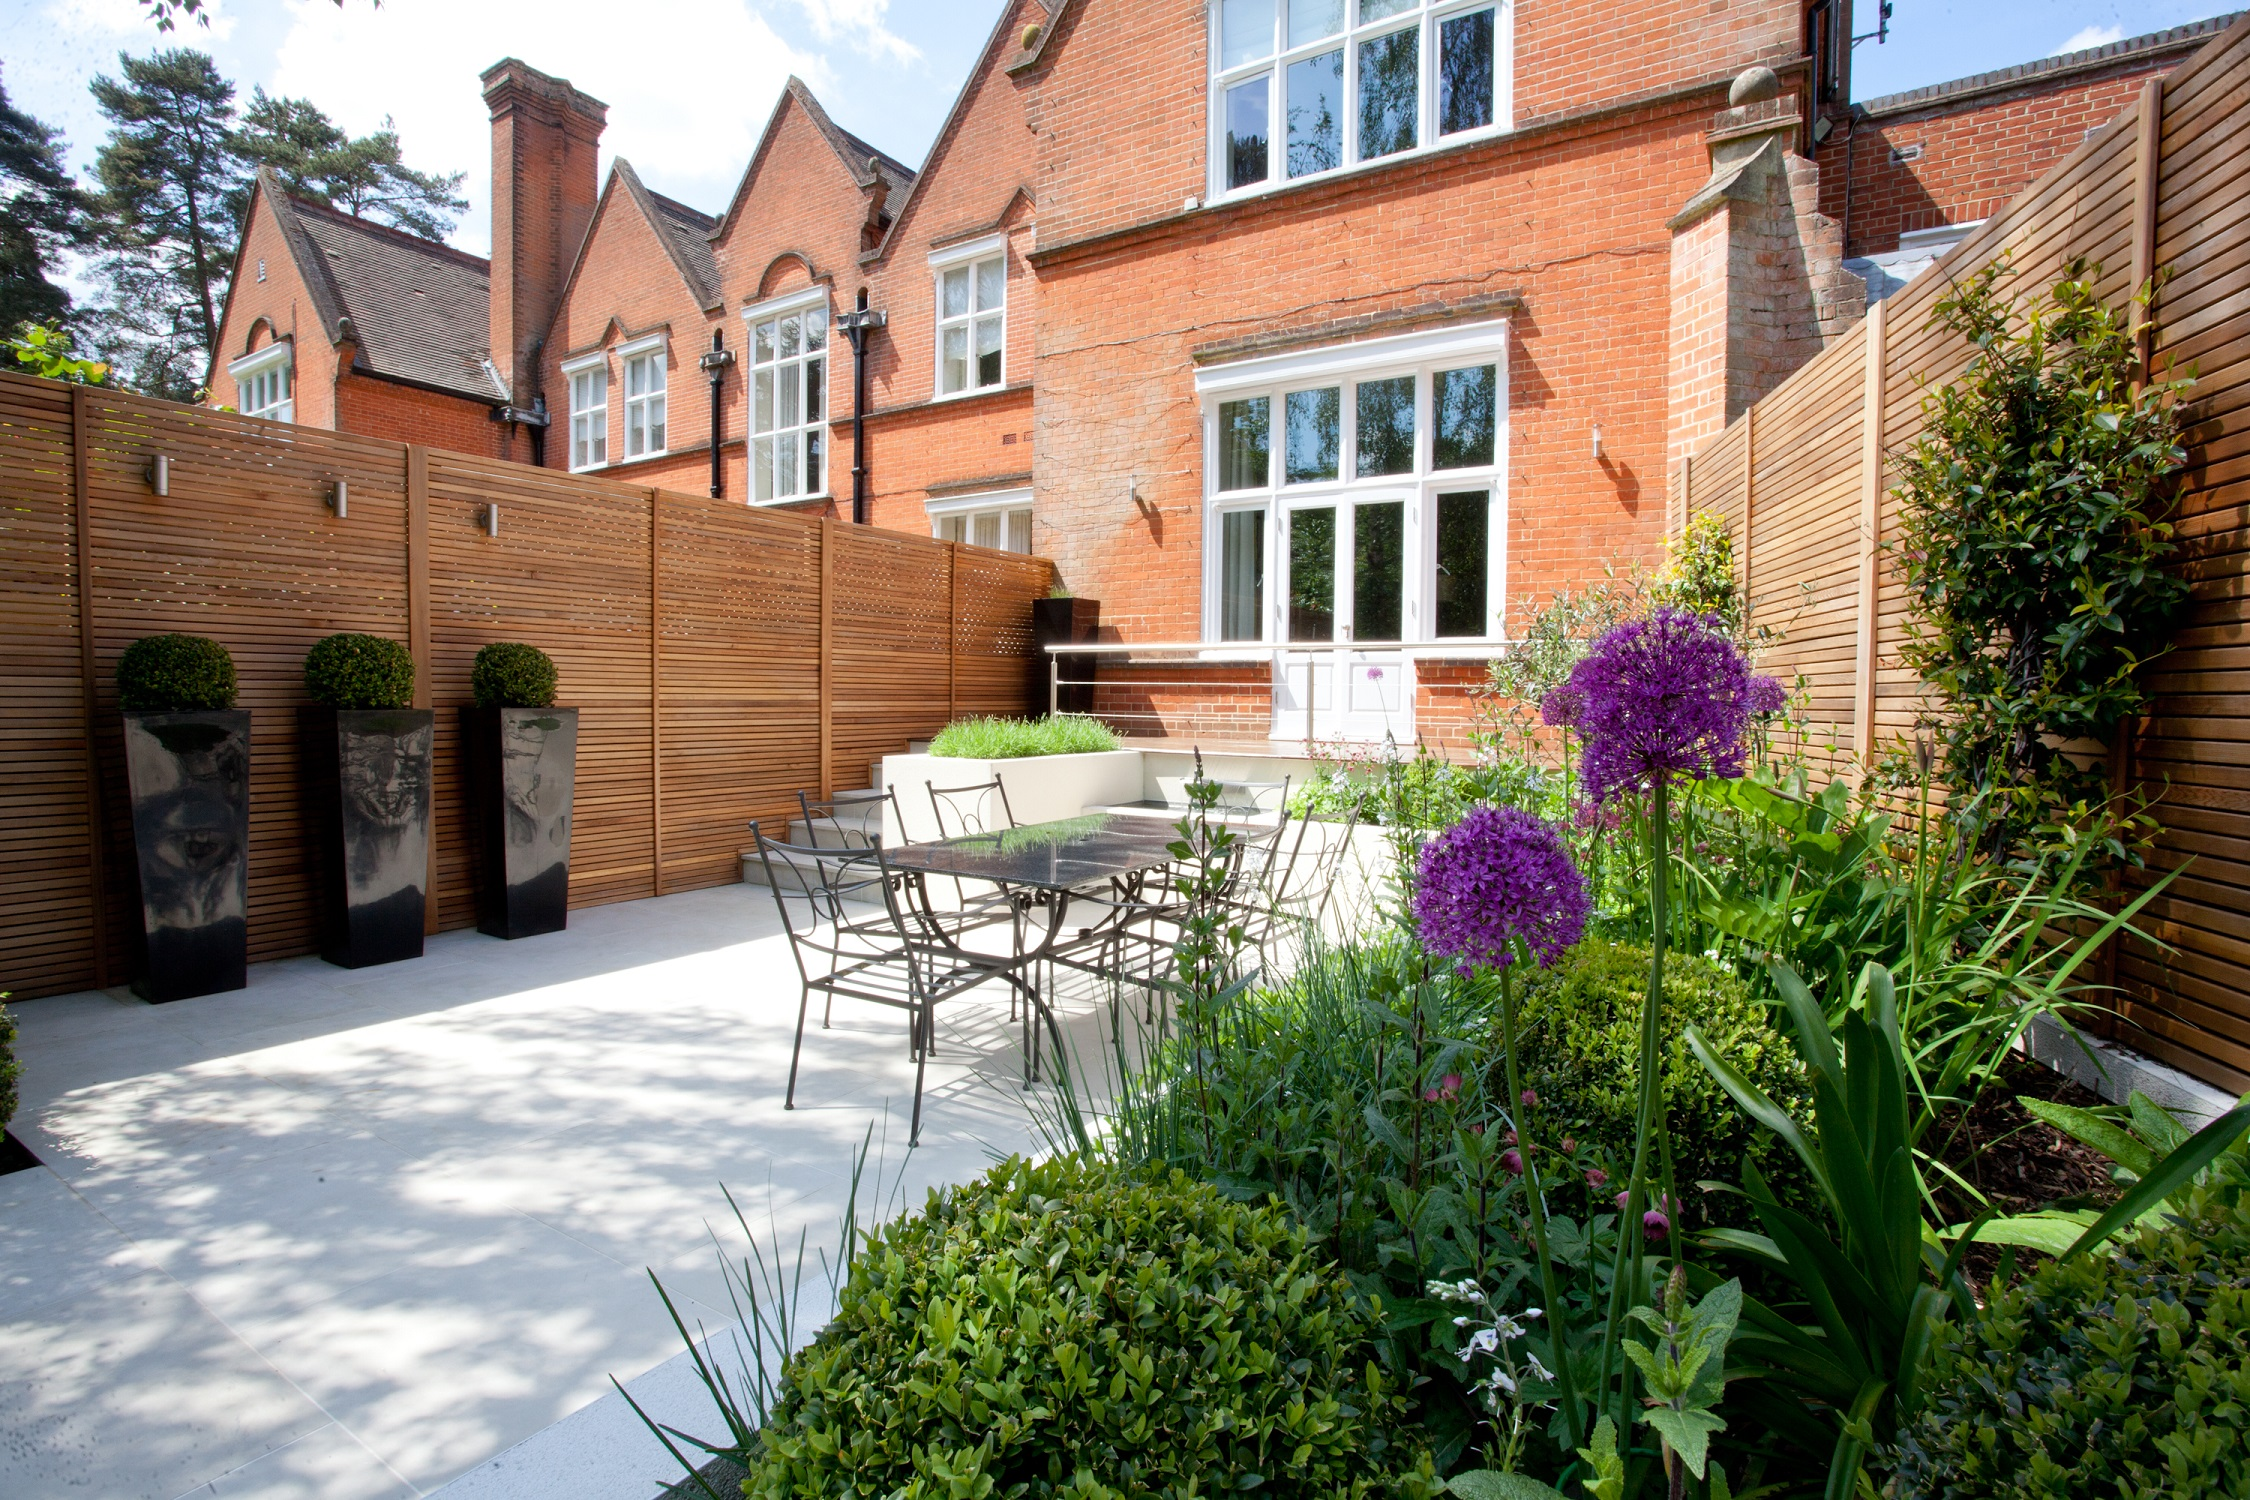 Terrace house berkshire helen sales garden design - Garden design terraced house ...